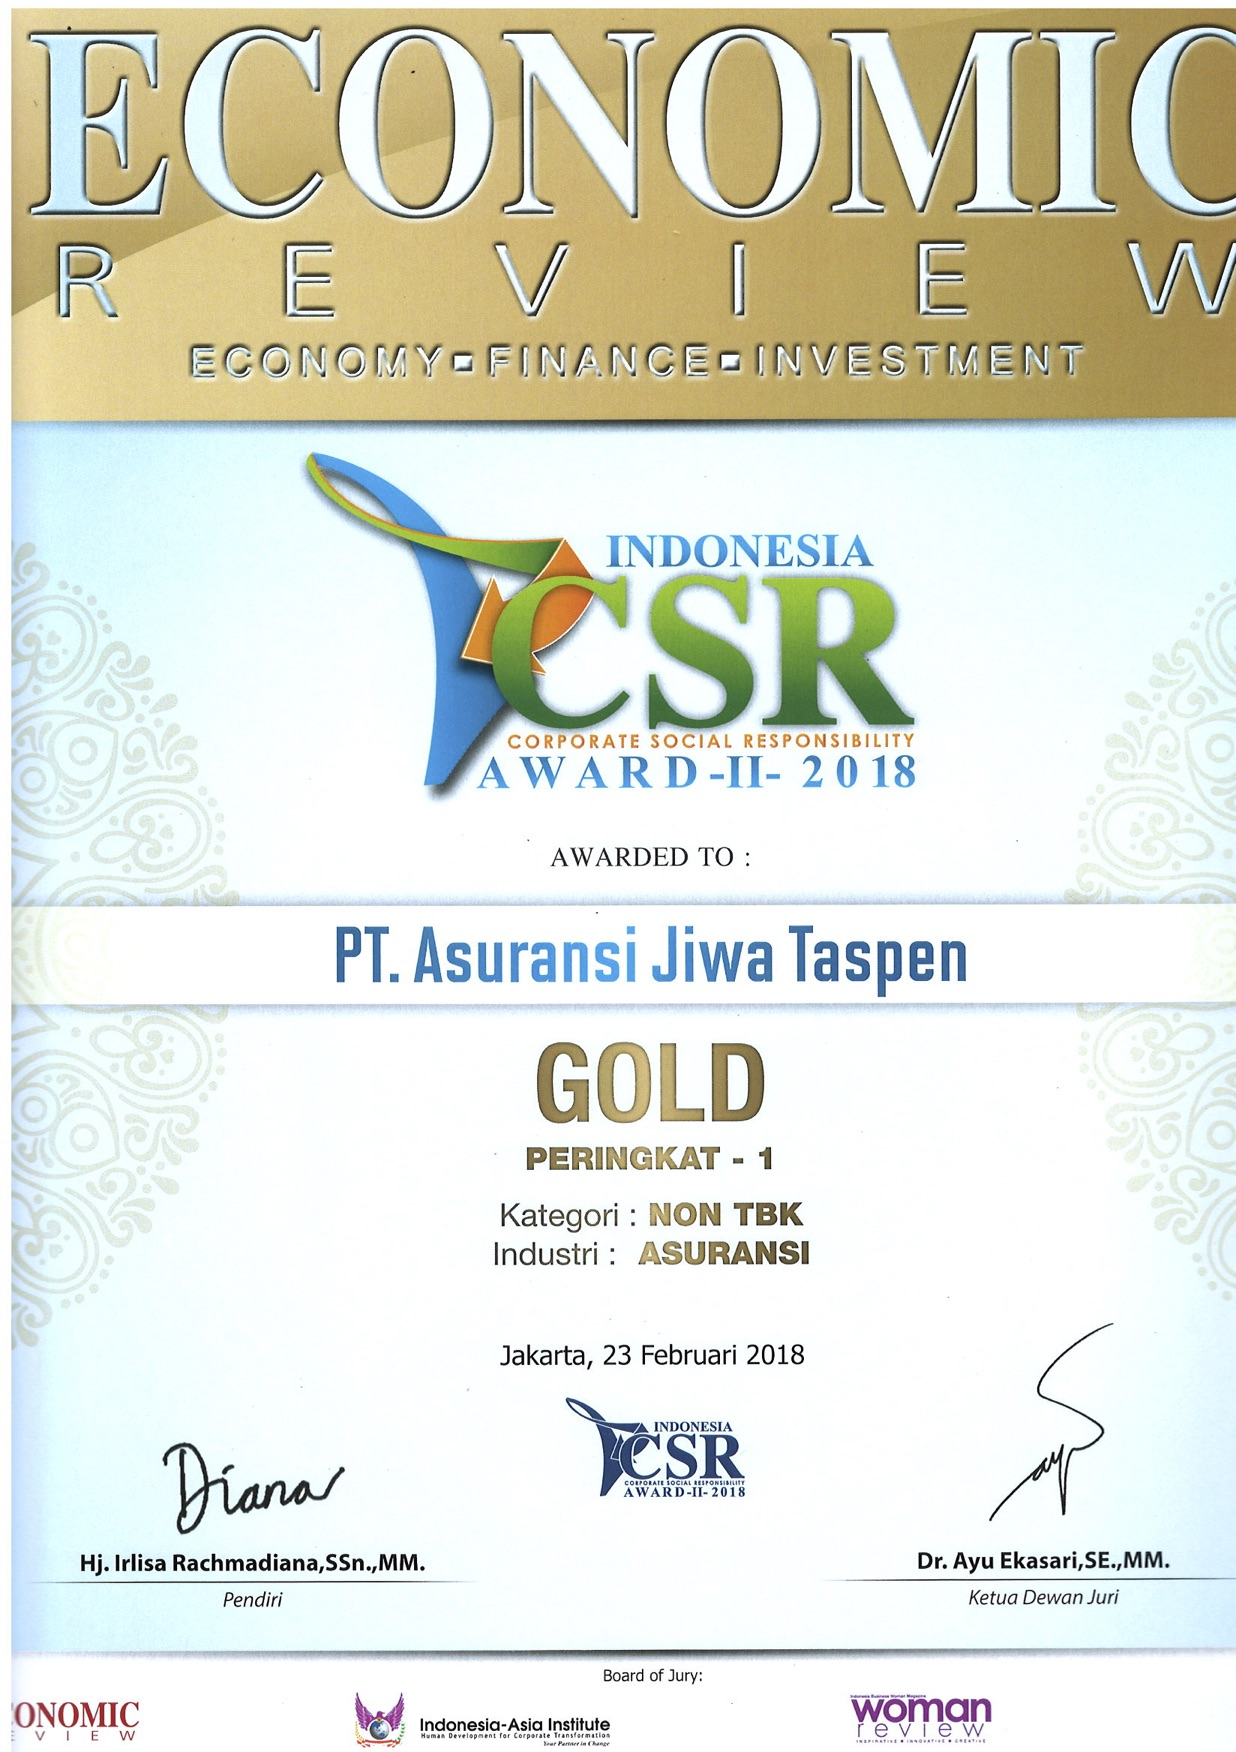 ICSR GOLD - Economic Review